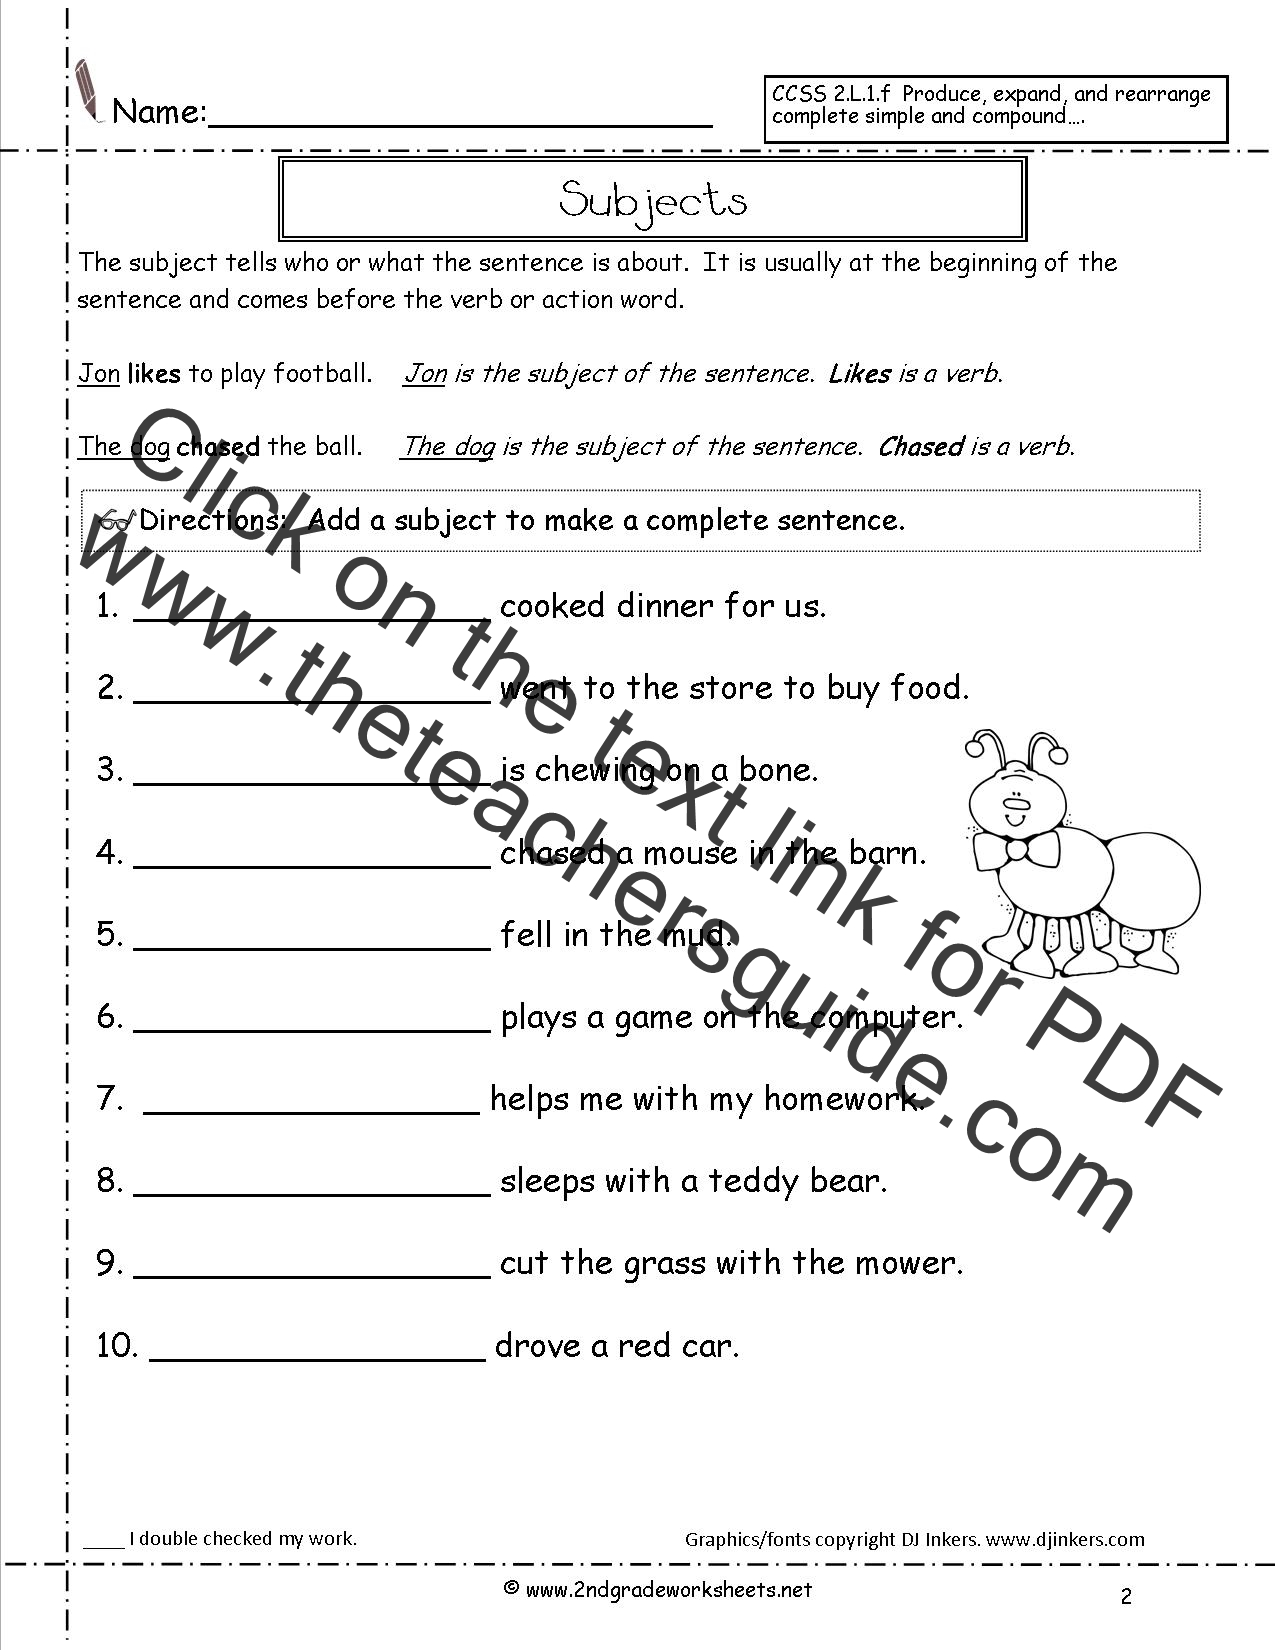 Printables Types Of Sentences Worksheets second grade sentences worksheets ccss 2 l 1 f subjects worksheet sentence subjects